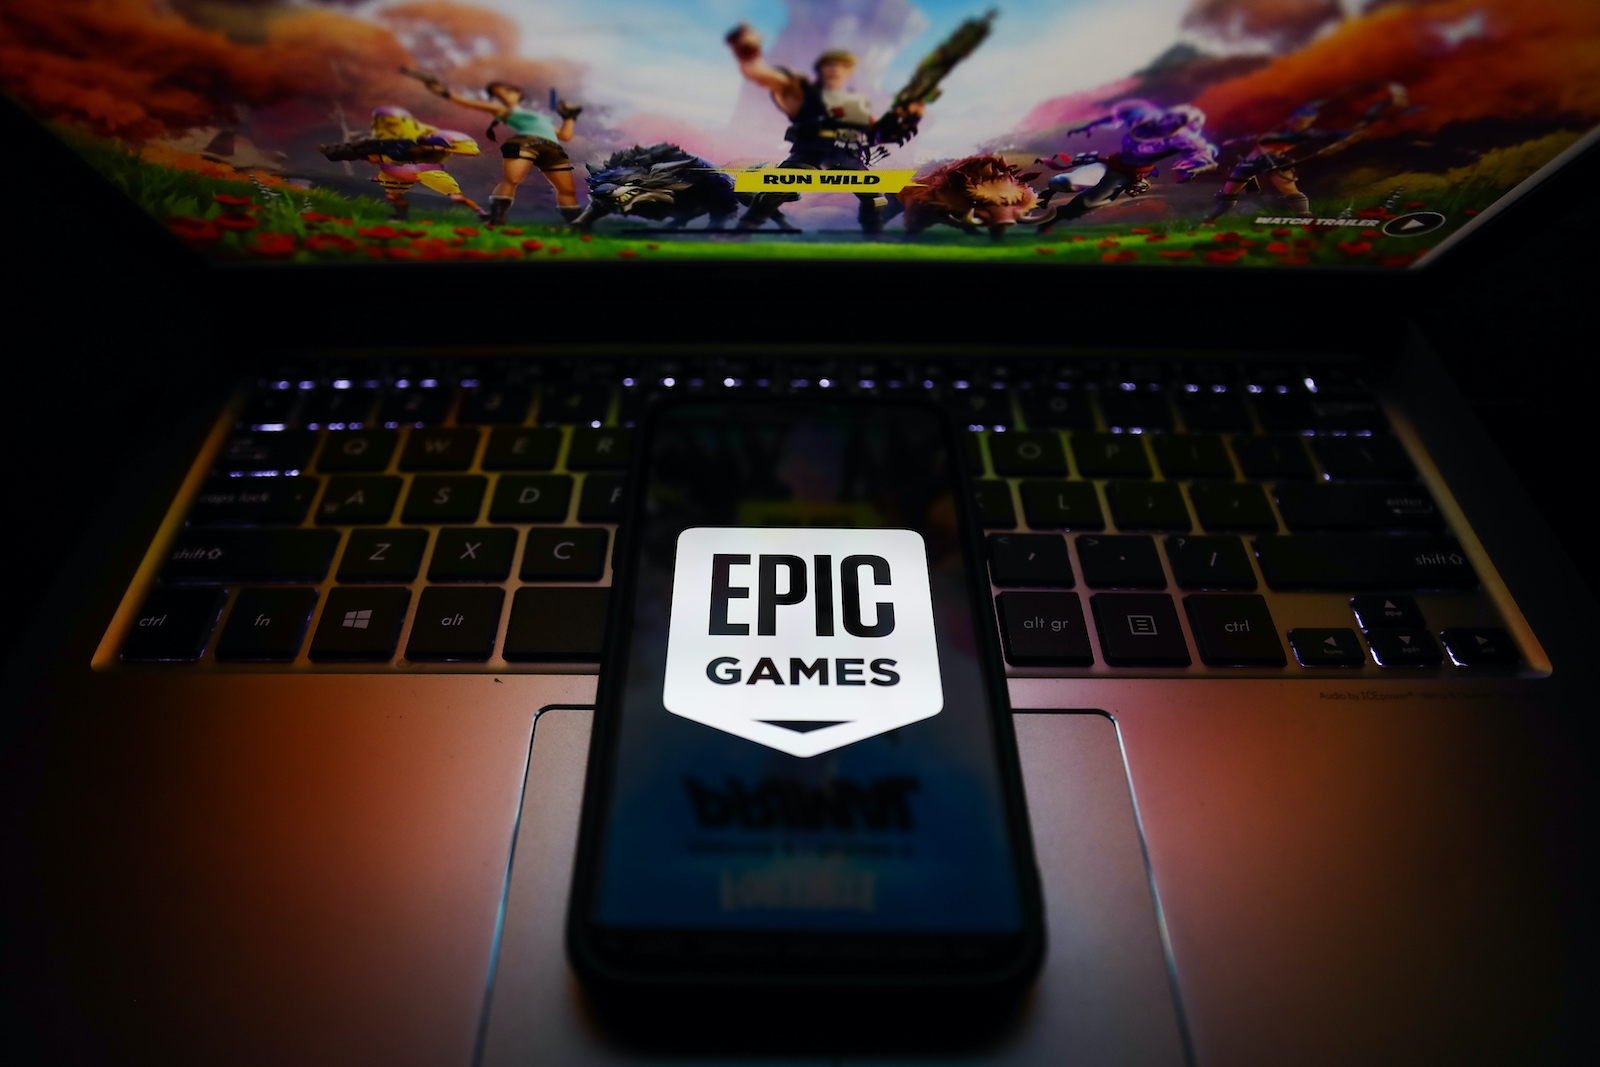 Epic Games logo is seen displayed on a phone screen in this illustration photo taken in Krakow, Poland on May 3, 2021. (Photo illustration by Jakub Porzycki/NurPhoto via Getty Images)